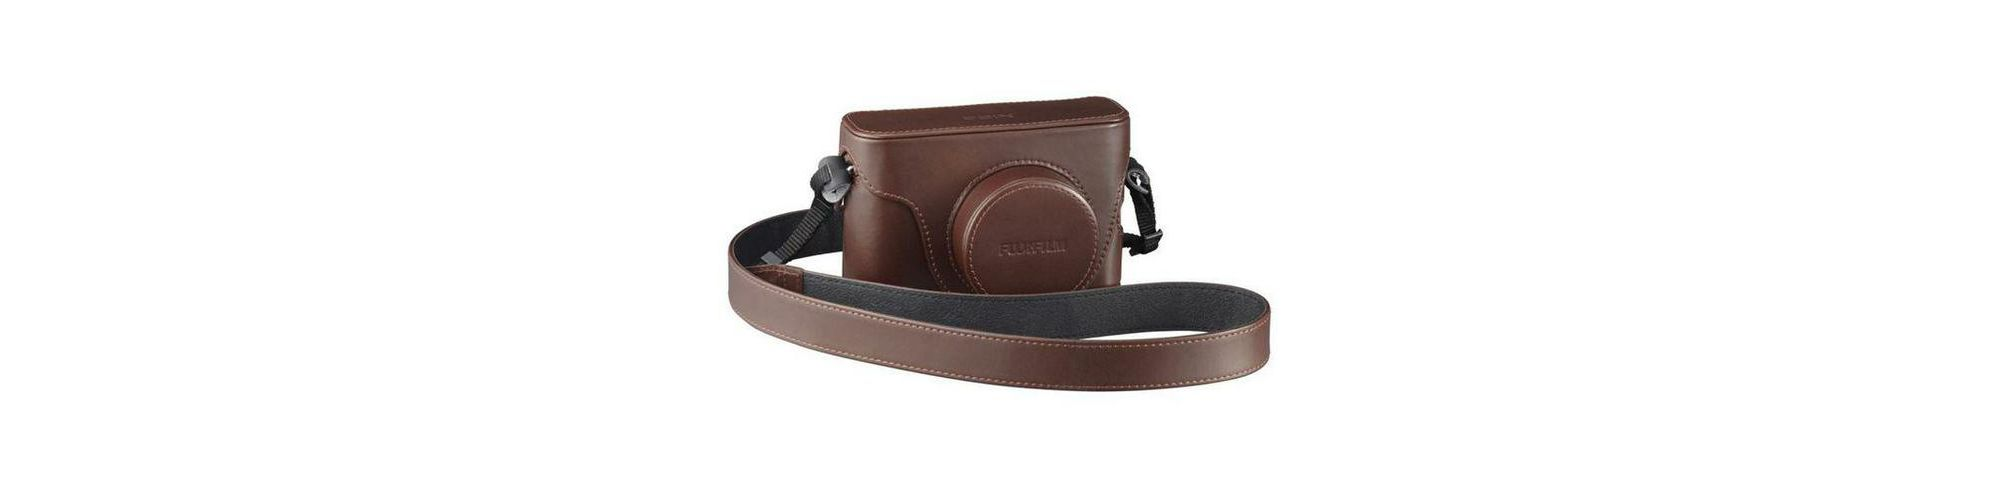 Fuji Premium Leather Case for X100